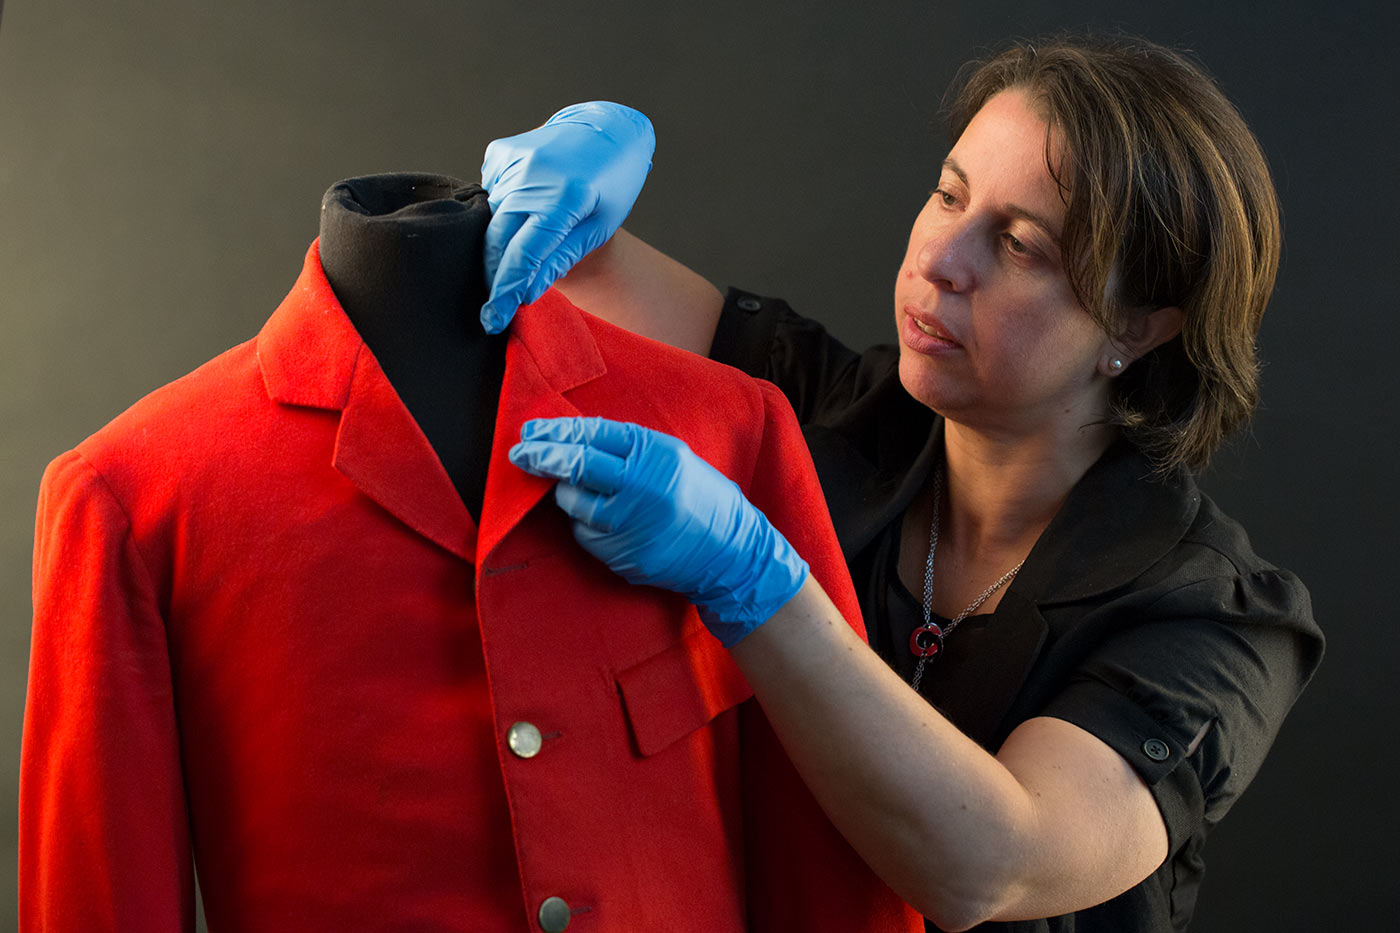 A woman is examining a red coat. - click to view larger image